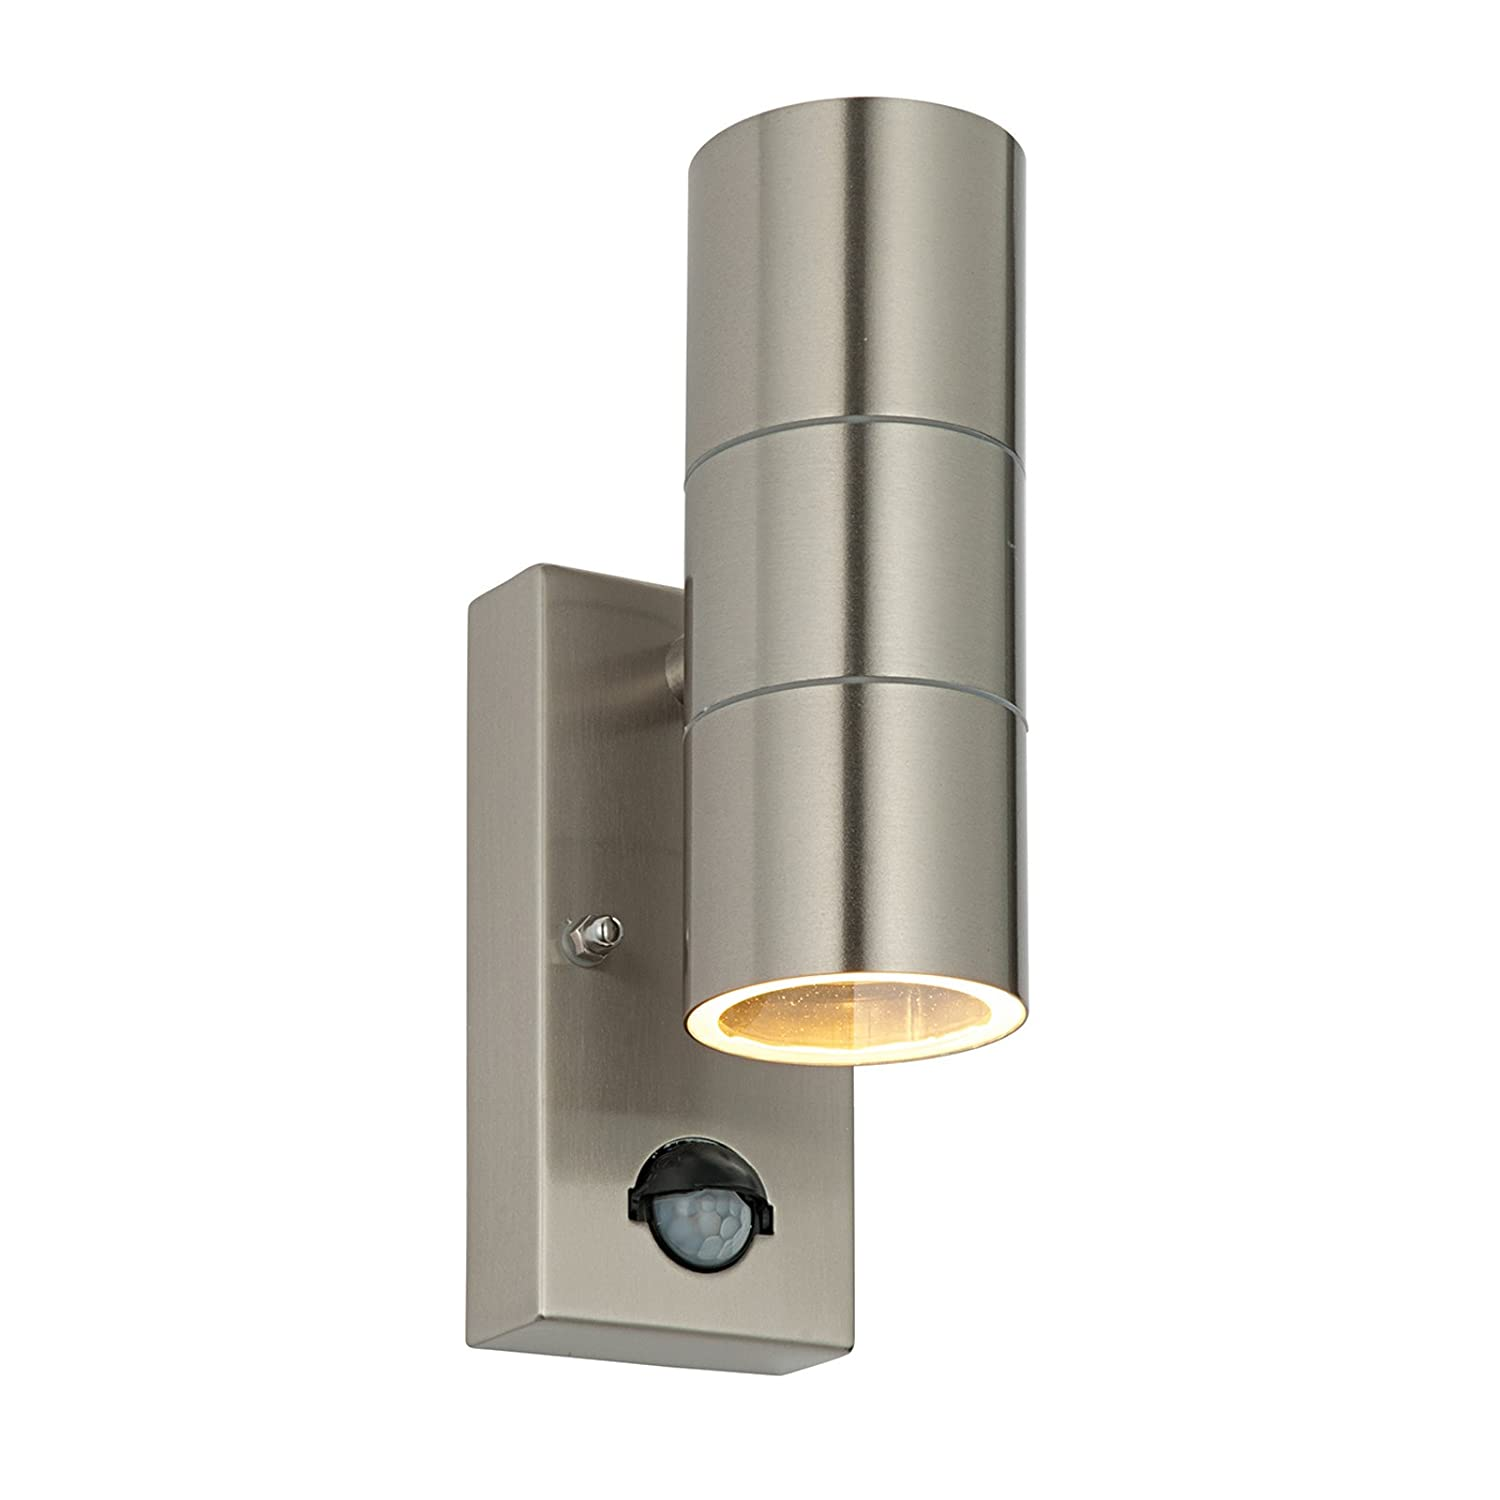 Saxby palin 35w brushed stainless steel pir outdoor garden ip44 saxby palin 35w brushed stainless steel pir outdoor garden ip44 motion sensor steel up down wall light amazon garden outdoors aloadofball